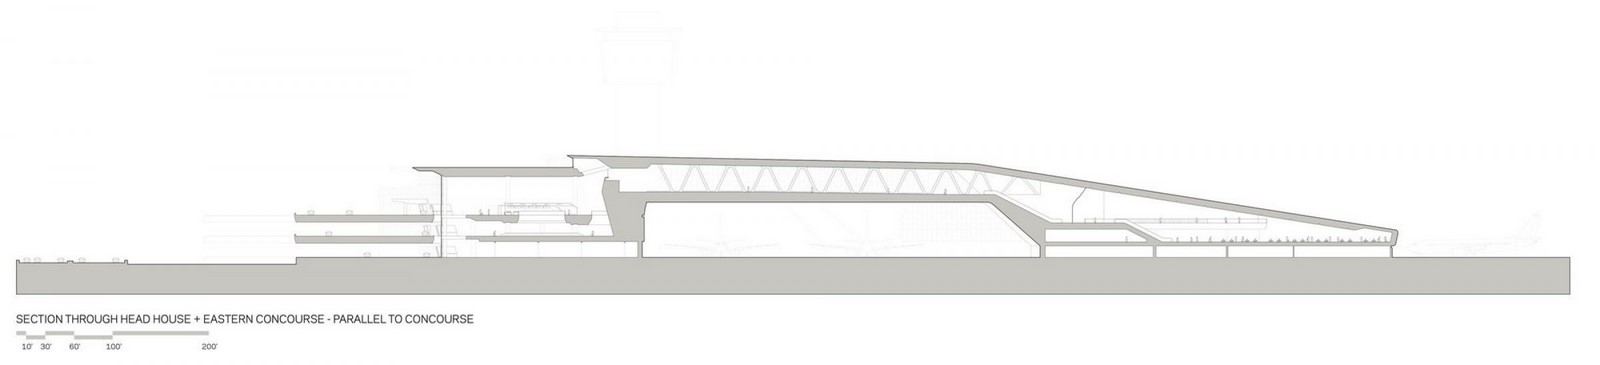 LaGuardia Airport by HOK: Advanced for it's time yet criticized - Sheet9